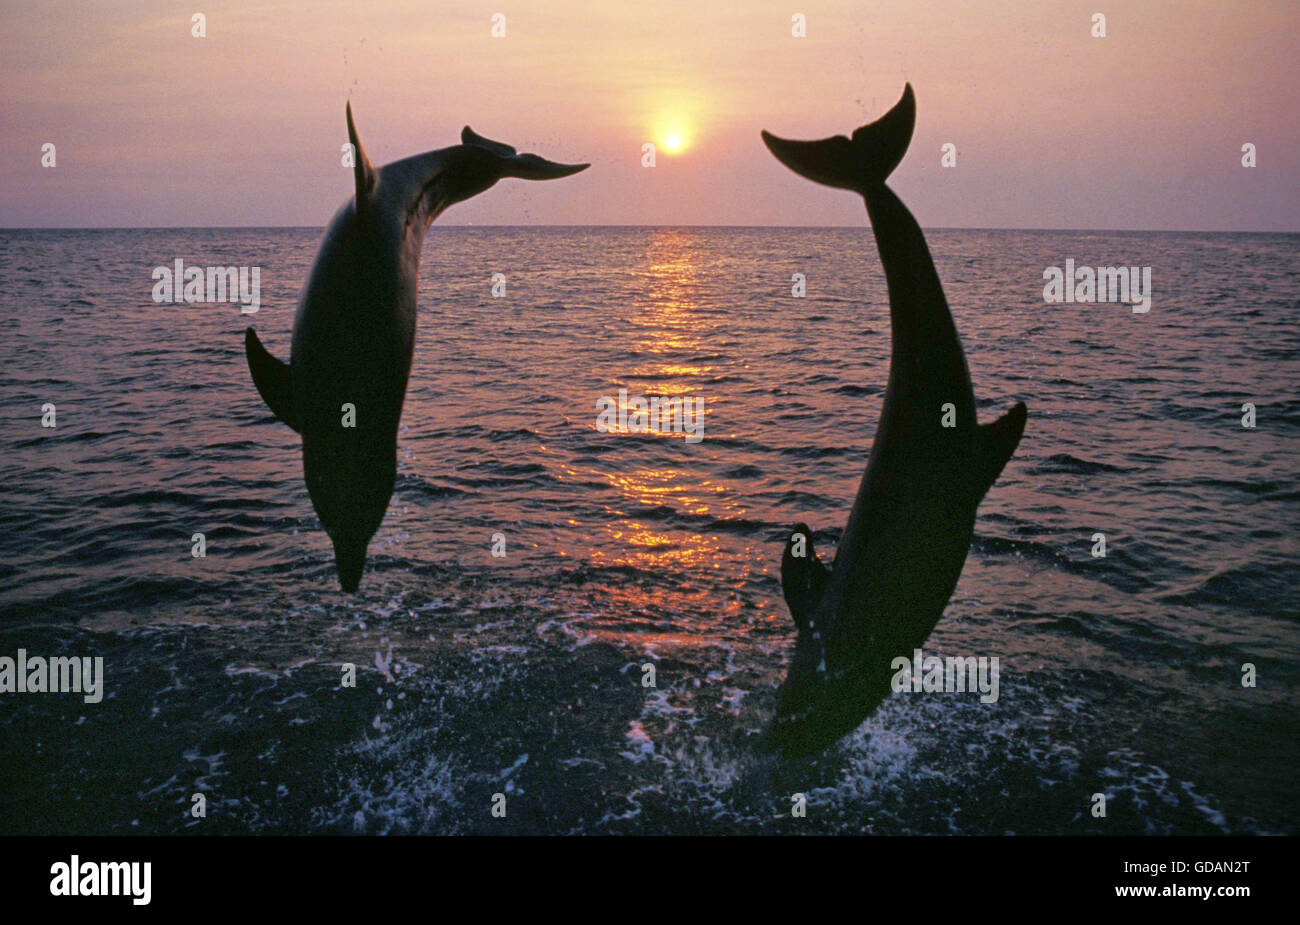 Bottlenose Dolphin, tursiops truncatus, Adults jumping at Sunset, Coast near Honduras - Stock Image